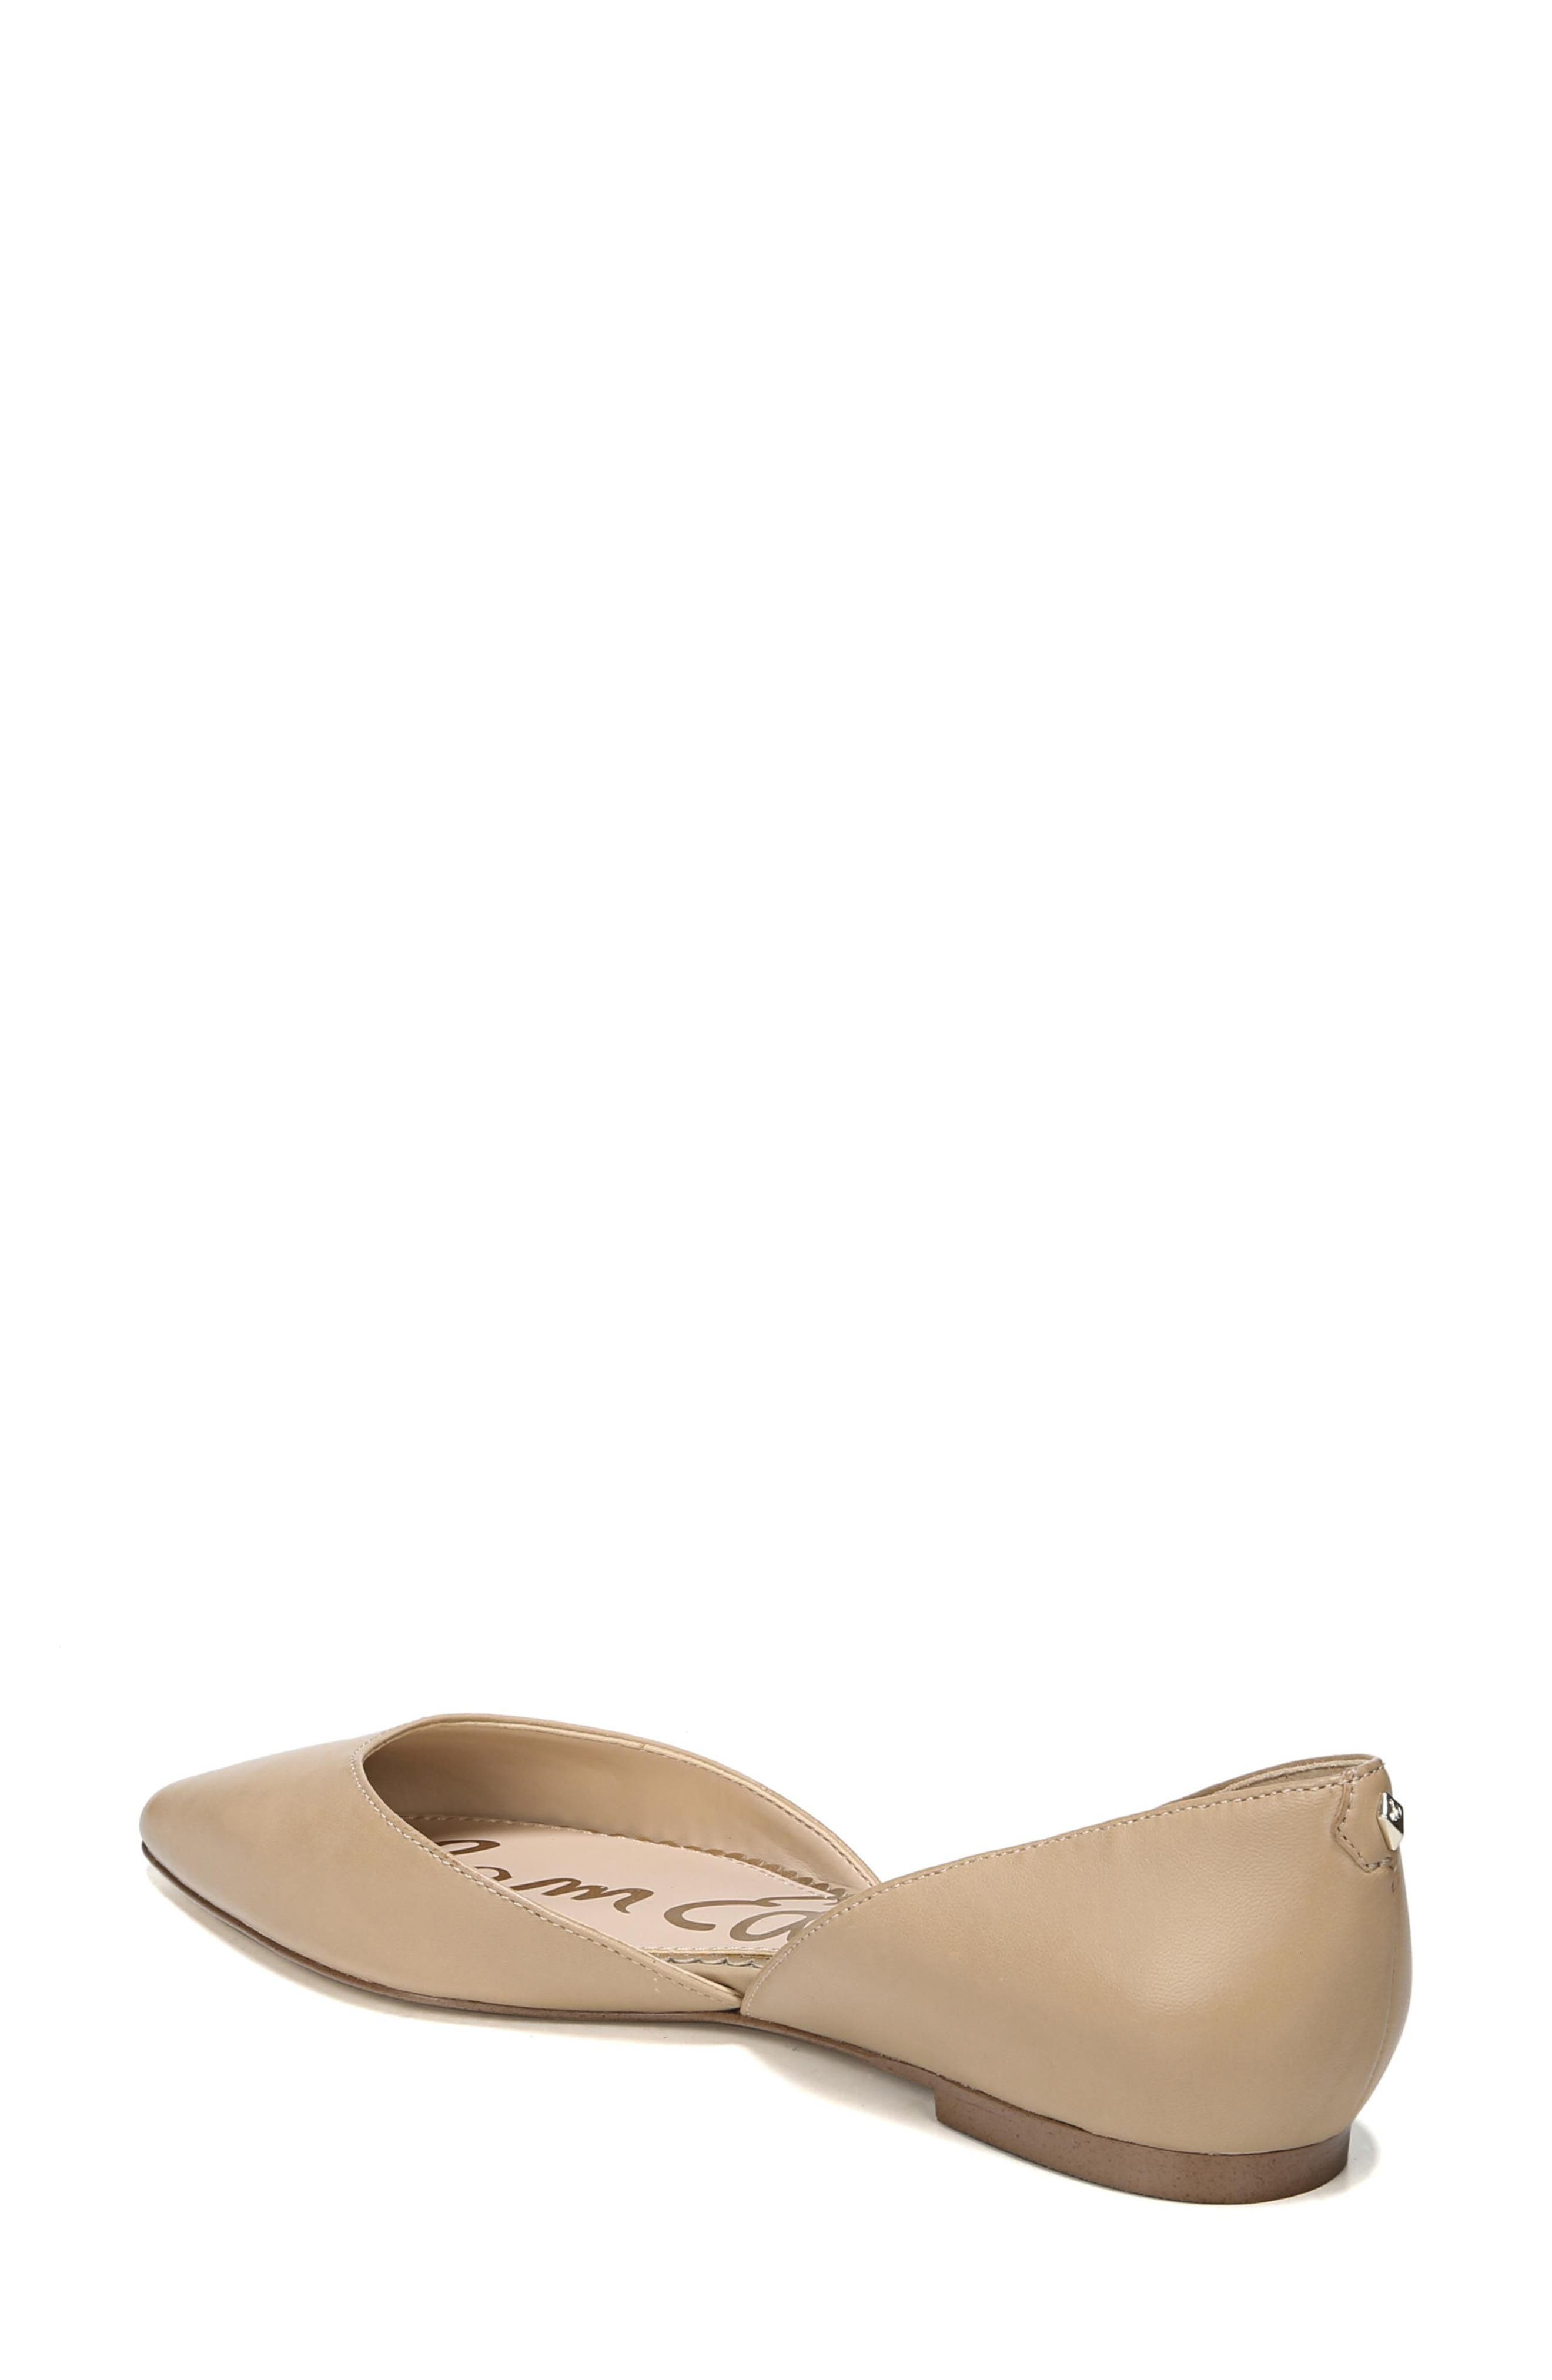 SAM EDELMAN, Rodney Pointy Toe d'Orsay Flat, Alternate thumbnail 2, color, CLASSIC NUDE LEATHER